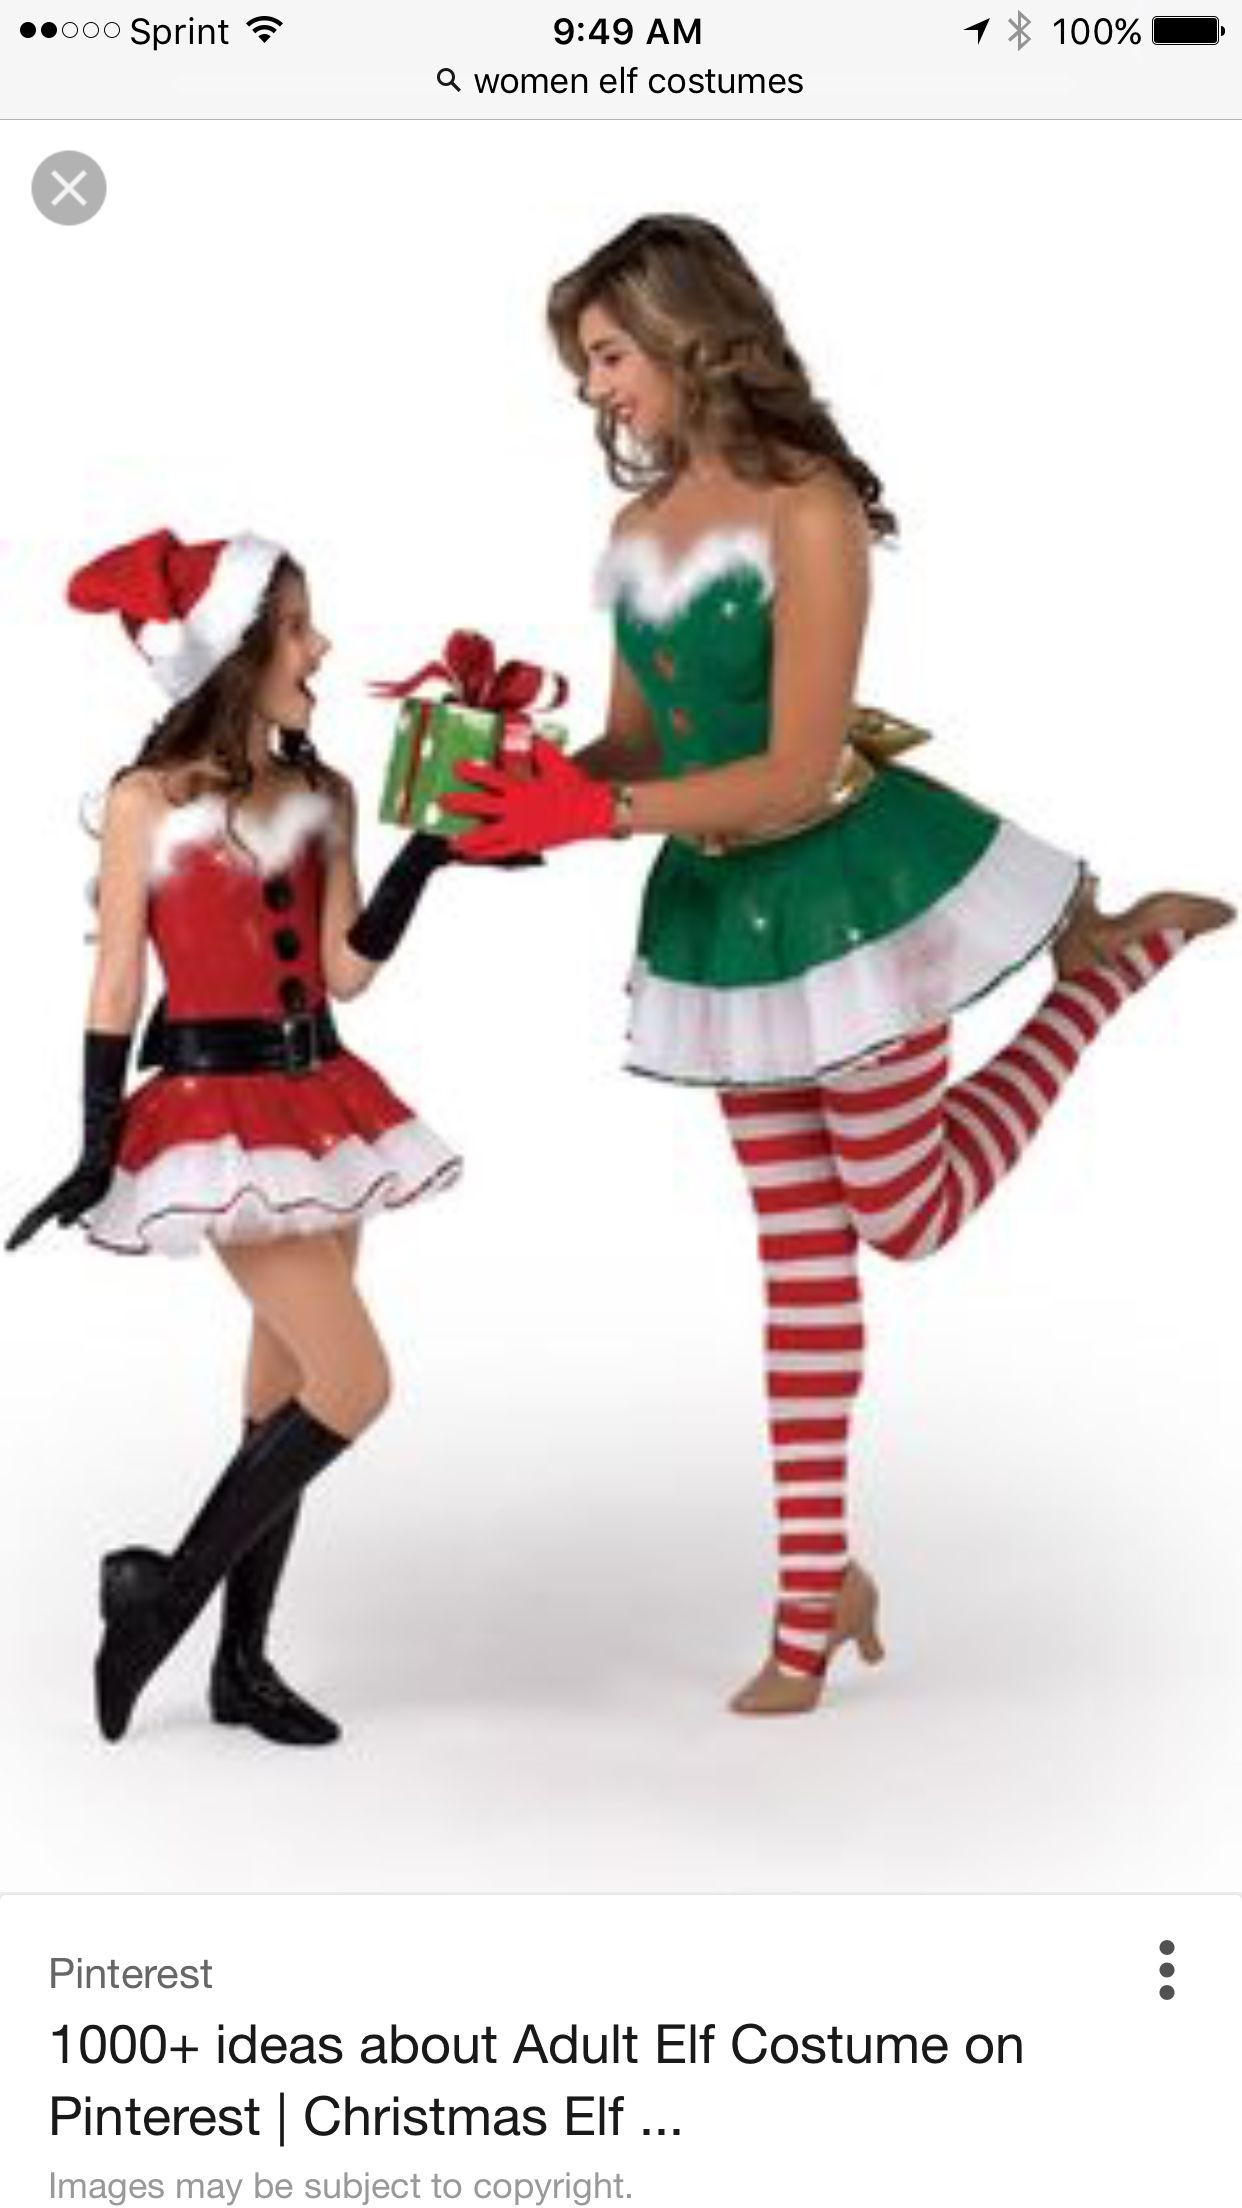 Pin By Nikki Wilkins On A Taste Of The Seasons All For The Holidays Christmas Dance Costumes Christmas Elf Costume Character Dance Costumes